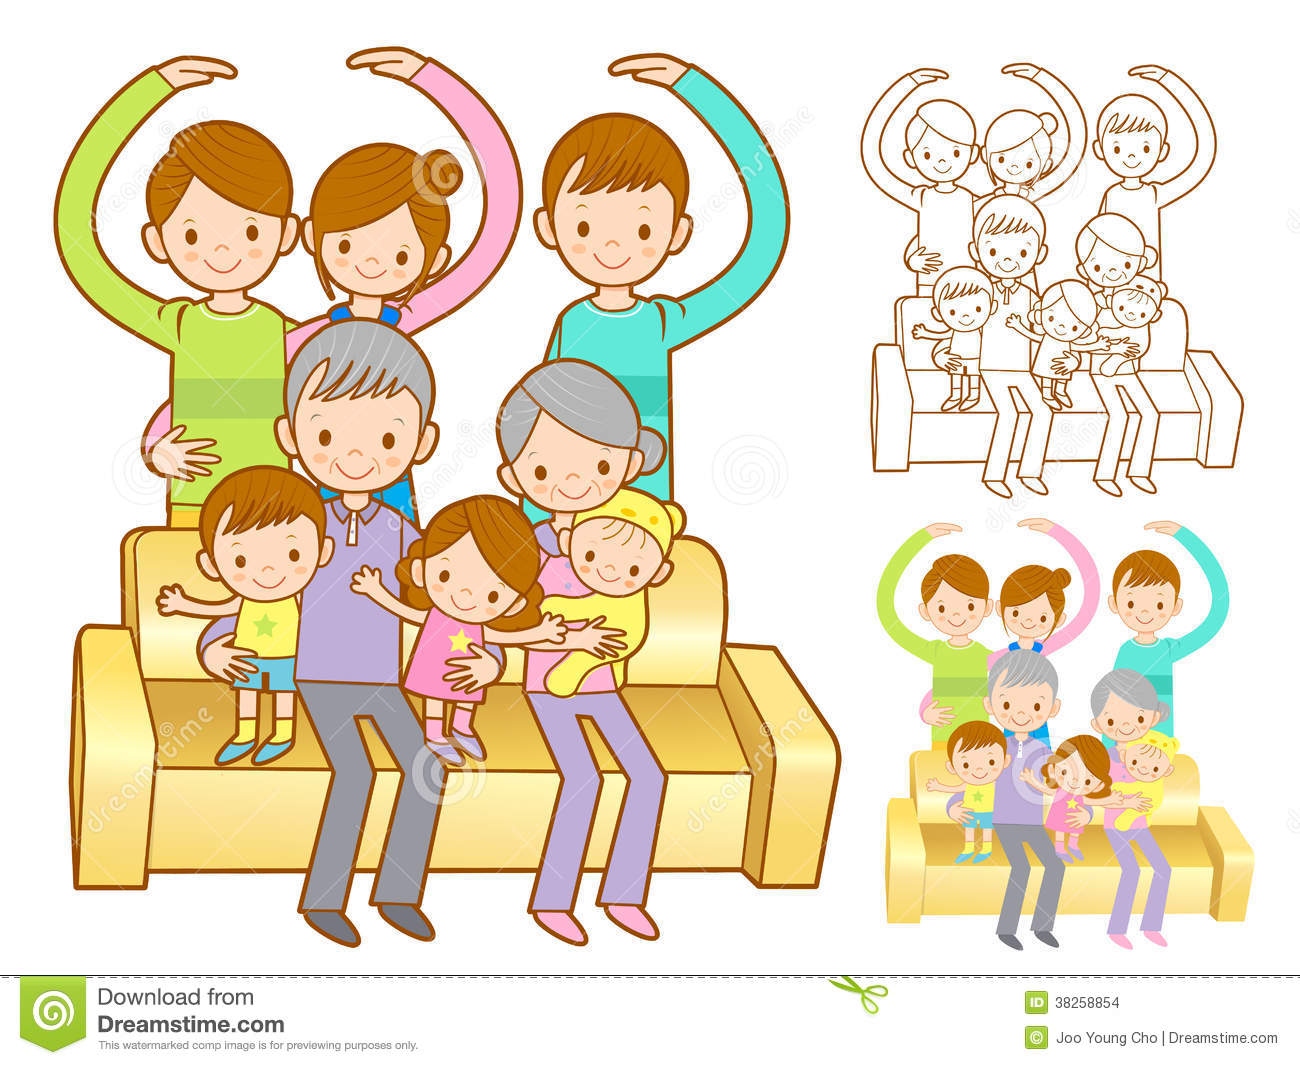 family business clipart - photo #15